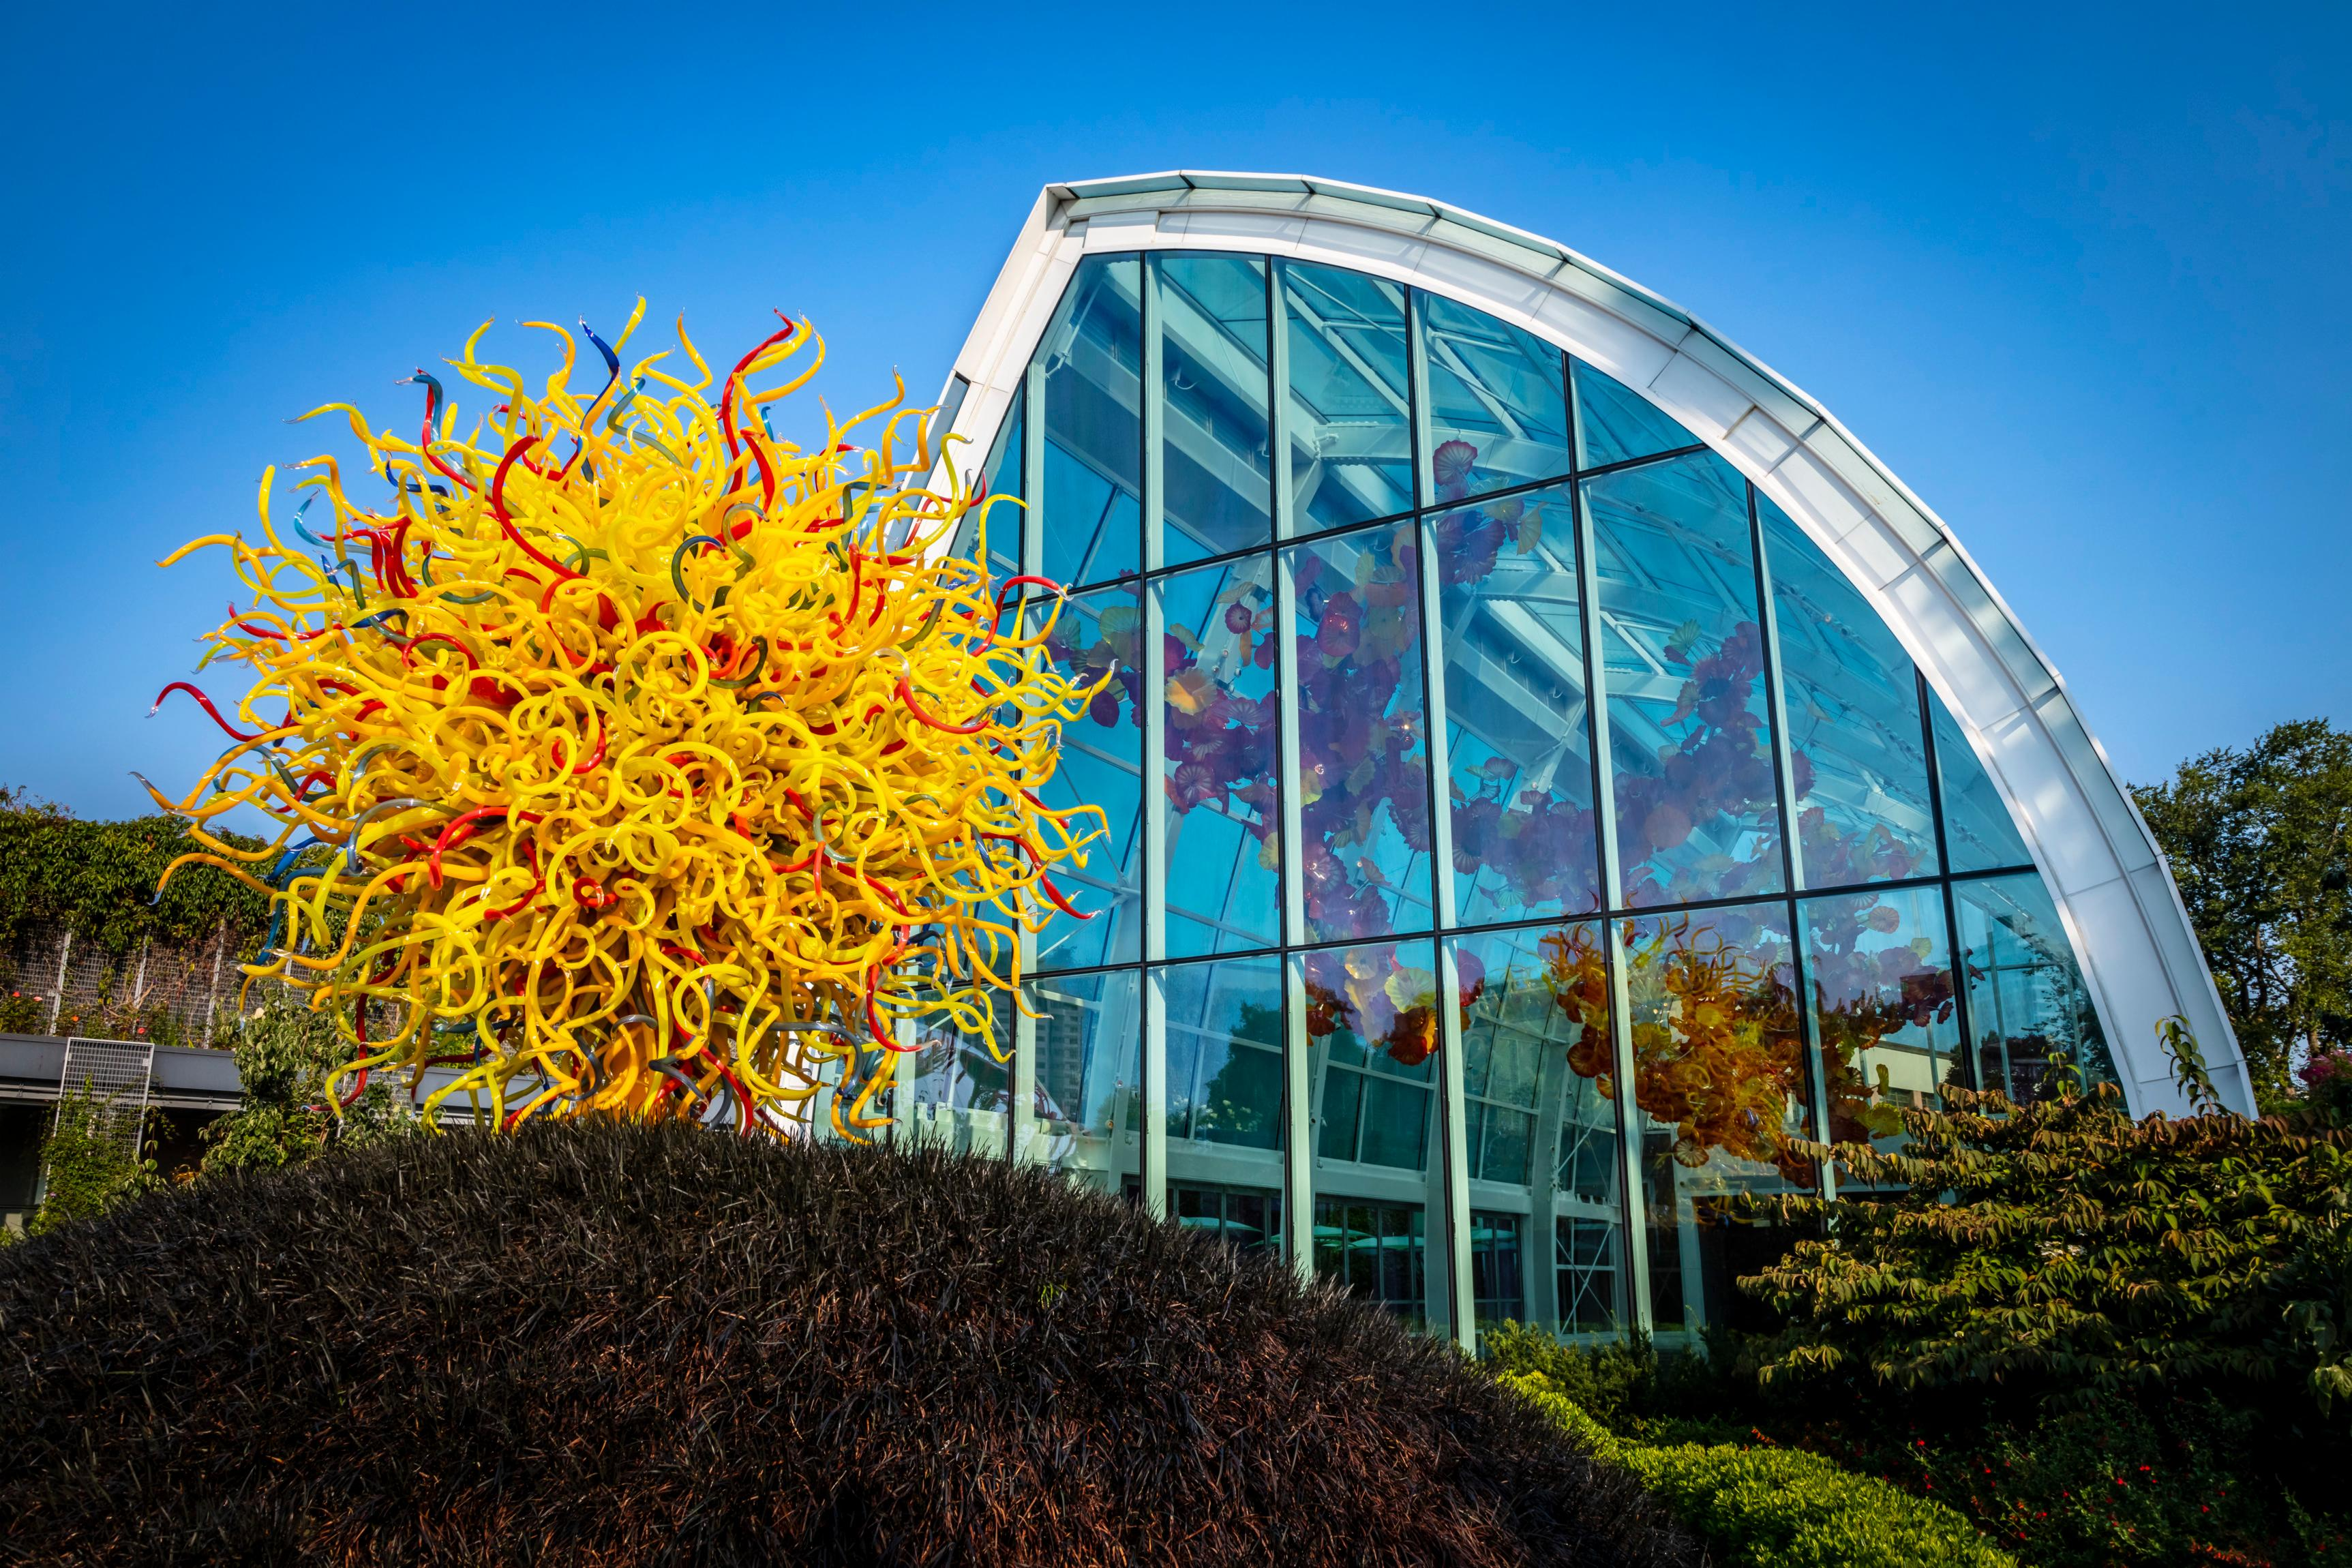 Dale Chihuly, Pioneering Glass Artist, Is Building a Major Legacy